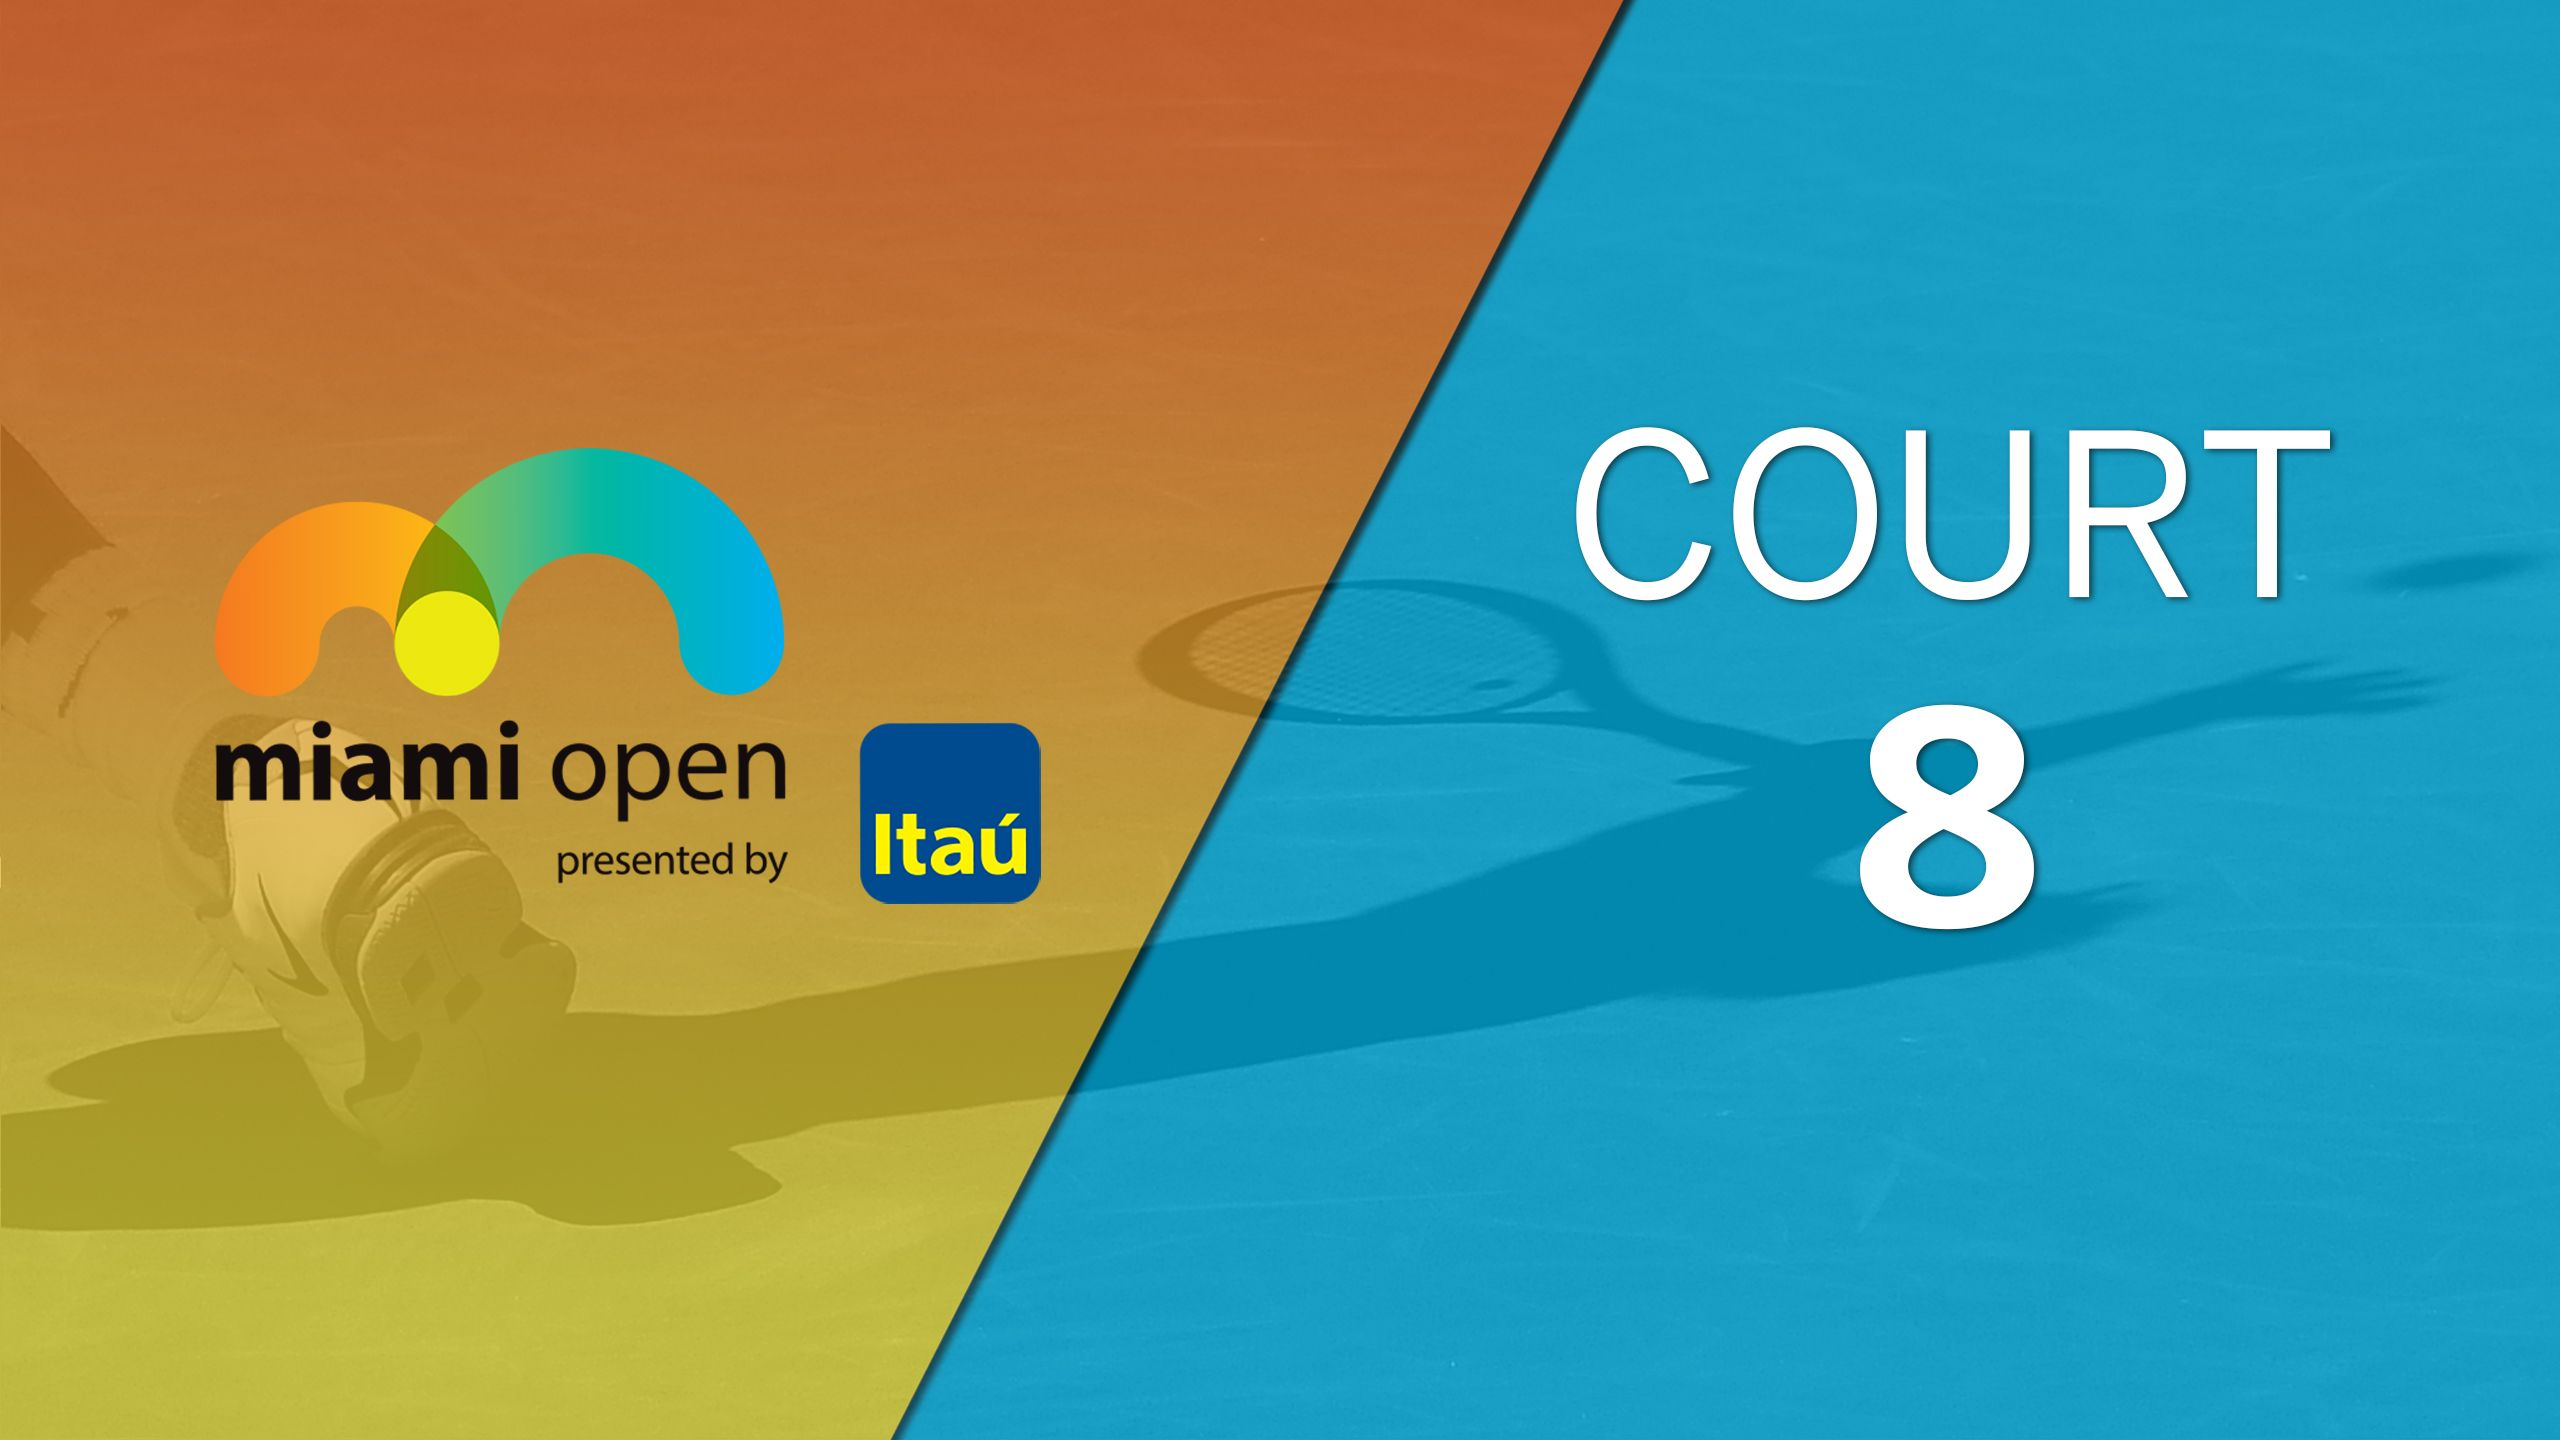 Miami Open - Court 8 (First Round)